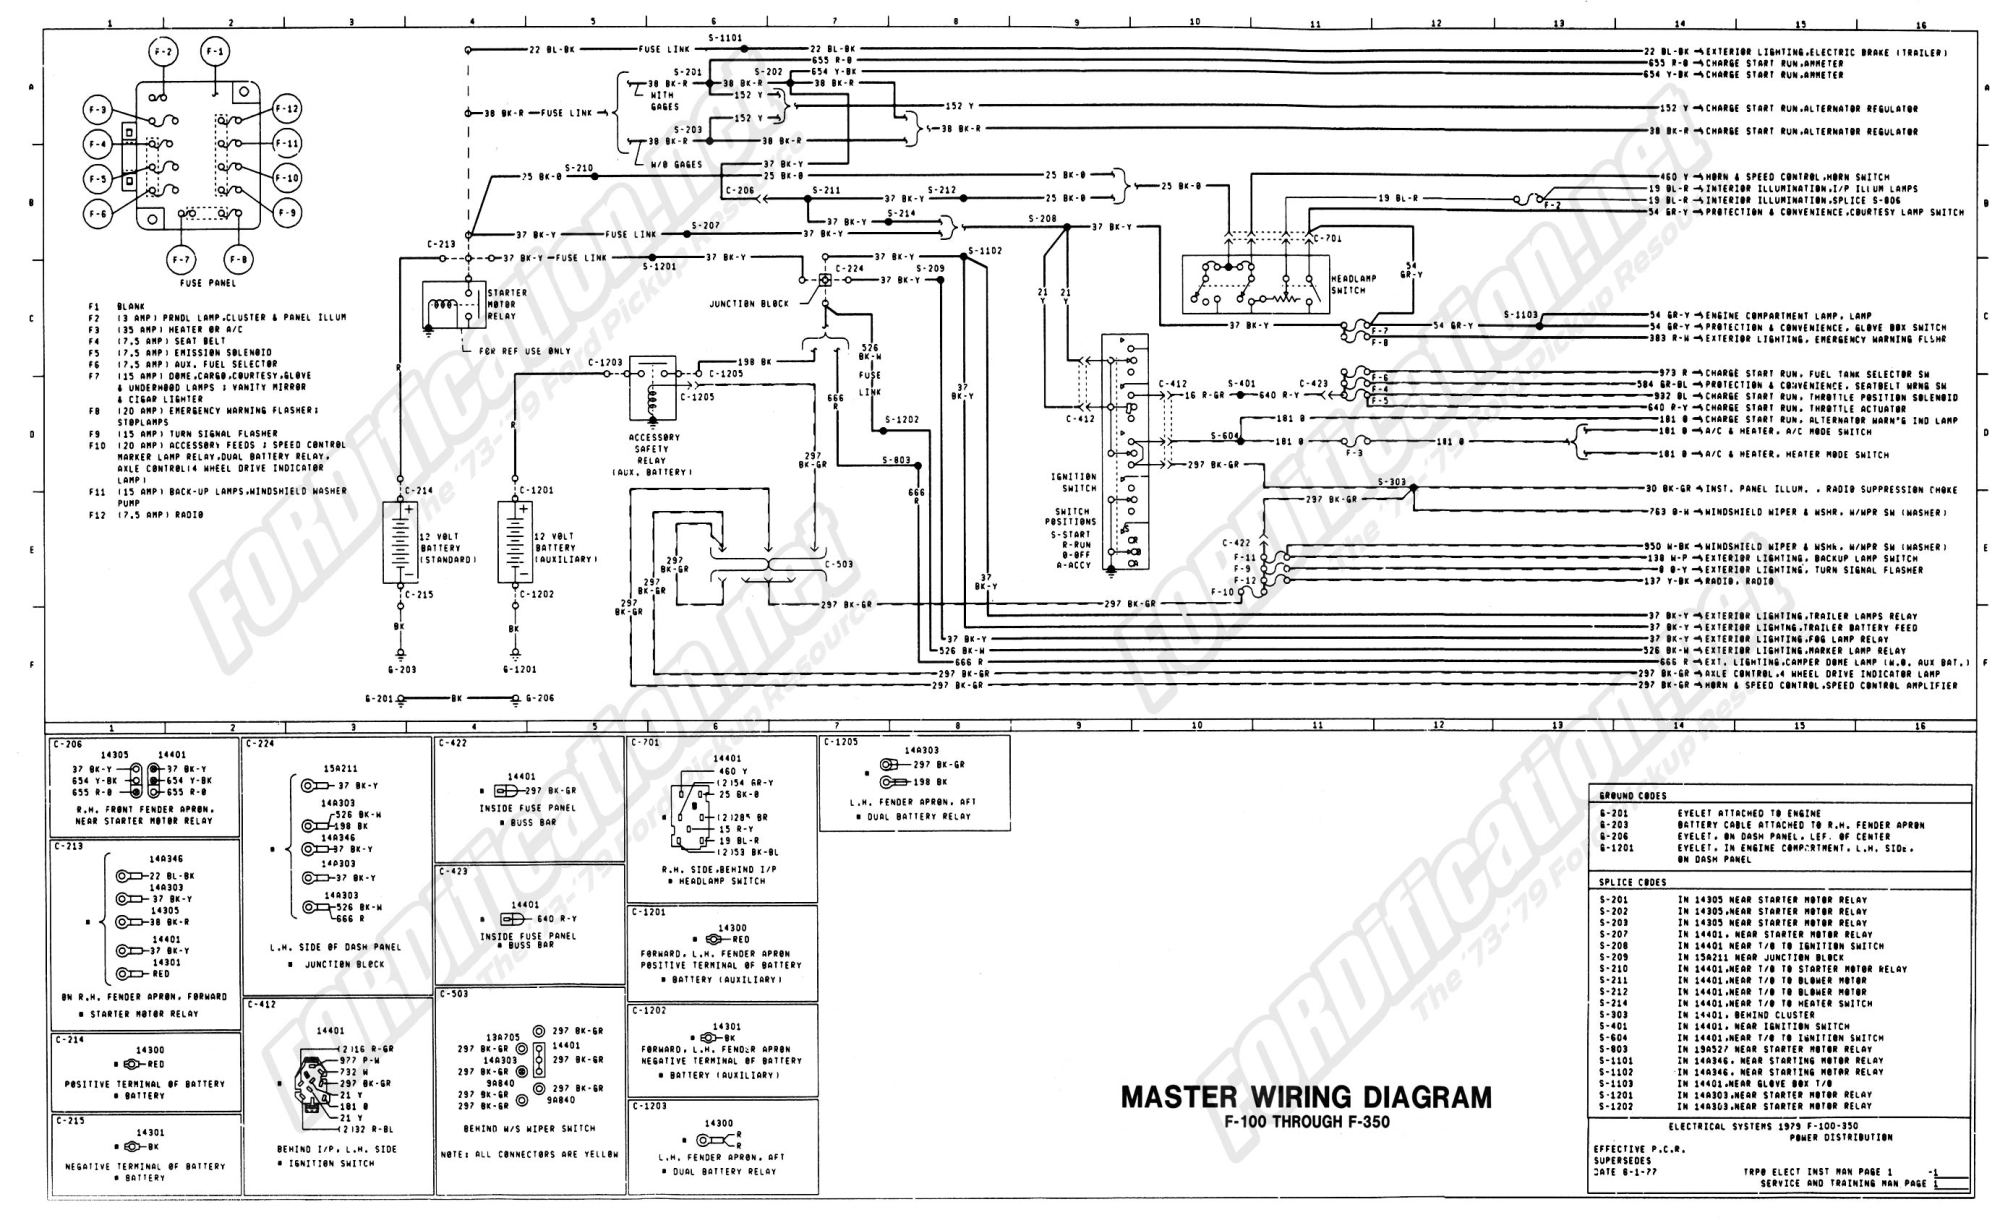 hight resolution of 2001 sterling fuse box detailed schematics diagram rh highcliffemedicalcentre com 2002 ford explorer fuse chart 2002